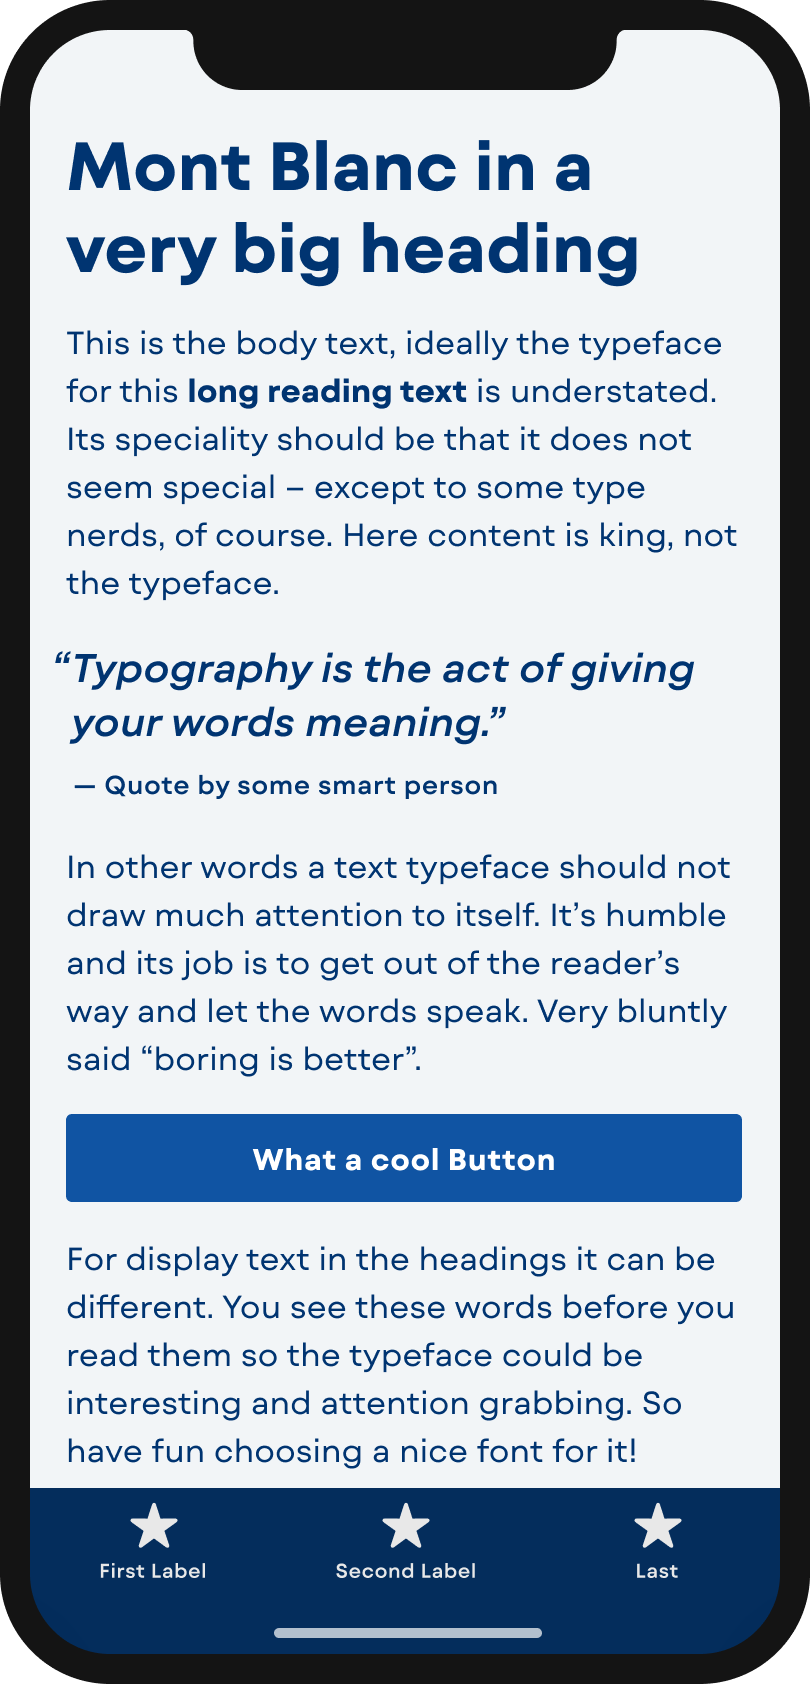 The geometric looking sans-serif typeface Mont Blanc a mobile phone in a headline and pull quot, the body text, and the labels of a button and navigation.